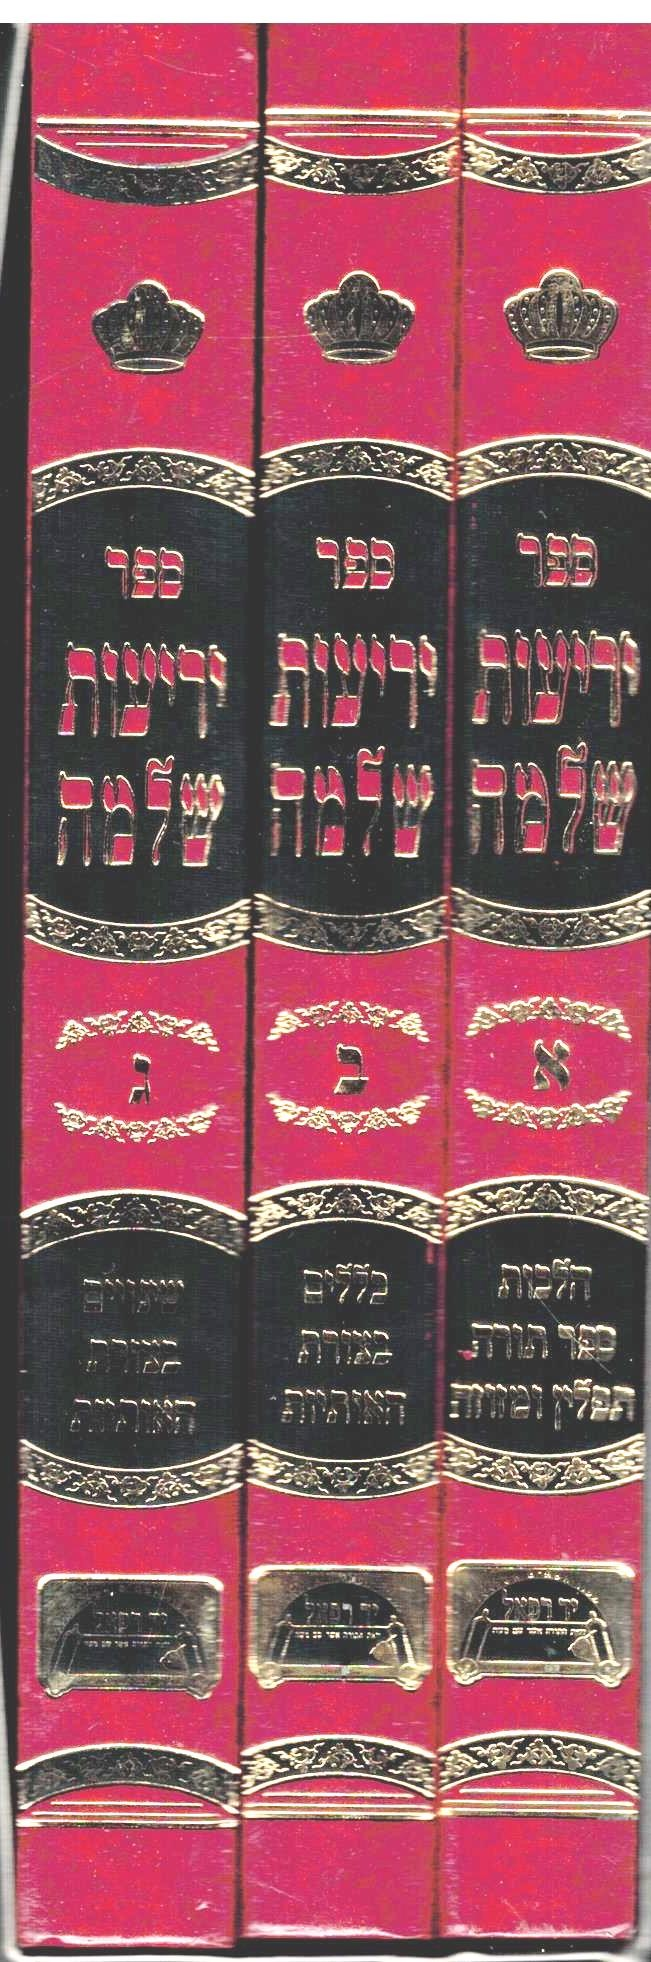 יריעות שלמה  Yeriot Shlomo